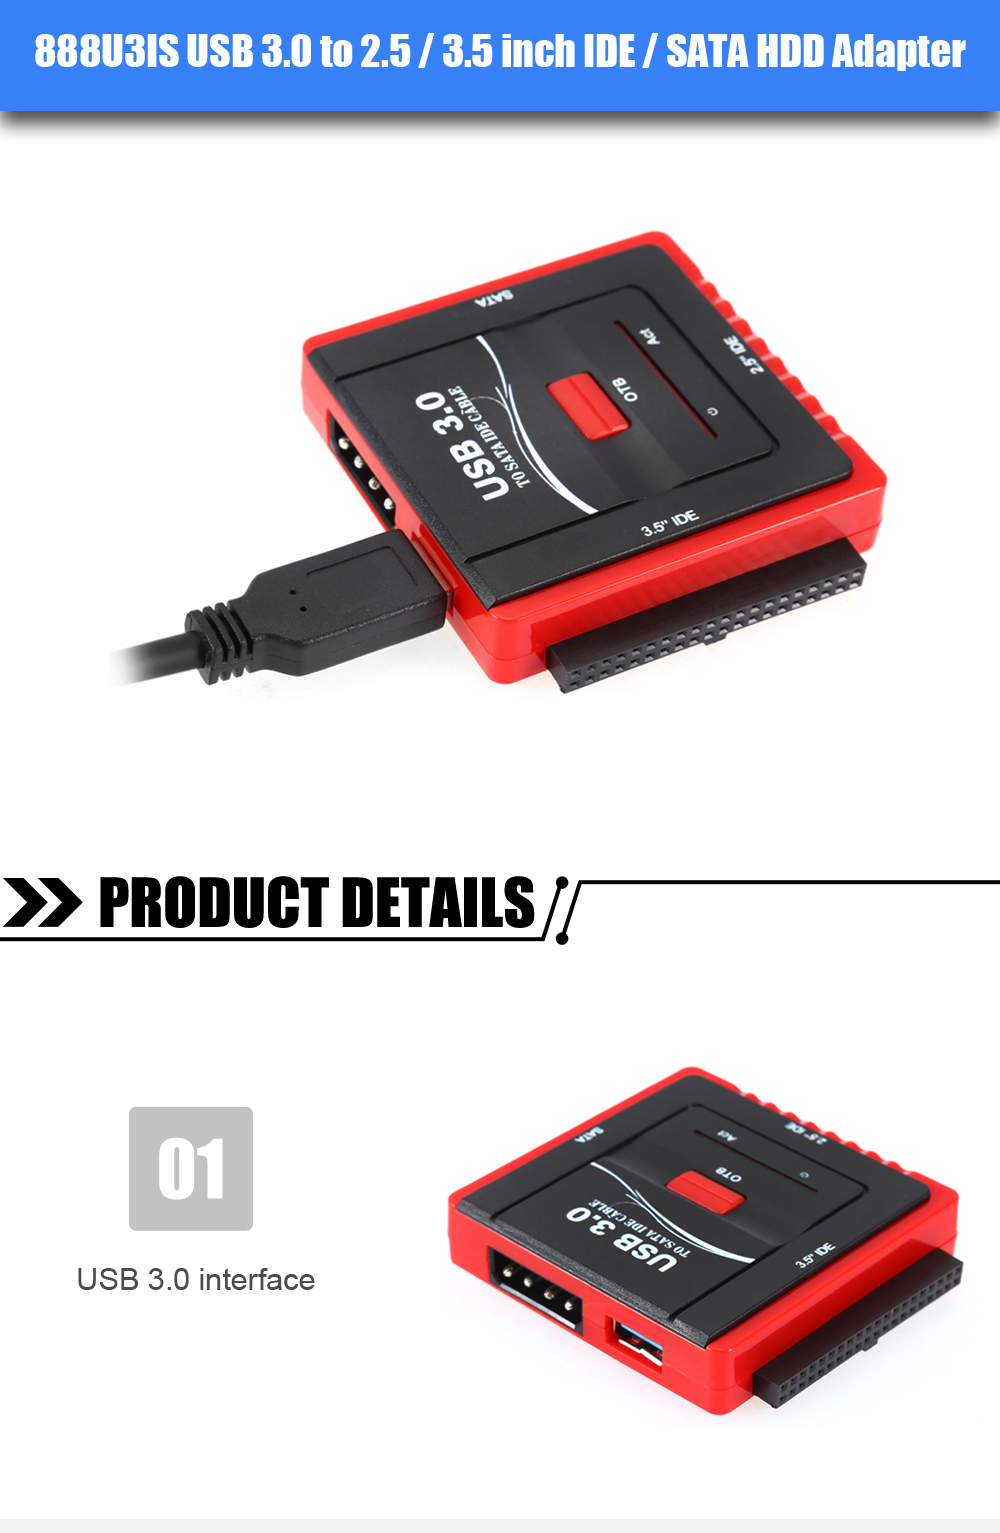 888U3IS USB 3.0 to 2.5 / 3.5 inch IDE / SATA HDD Adapter for Desktop PC / Notebook